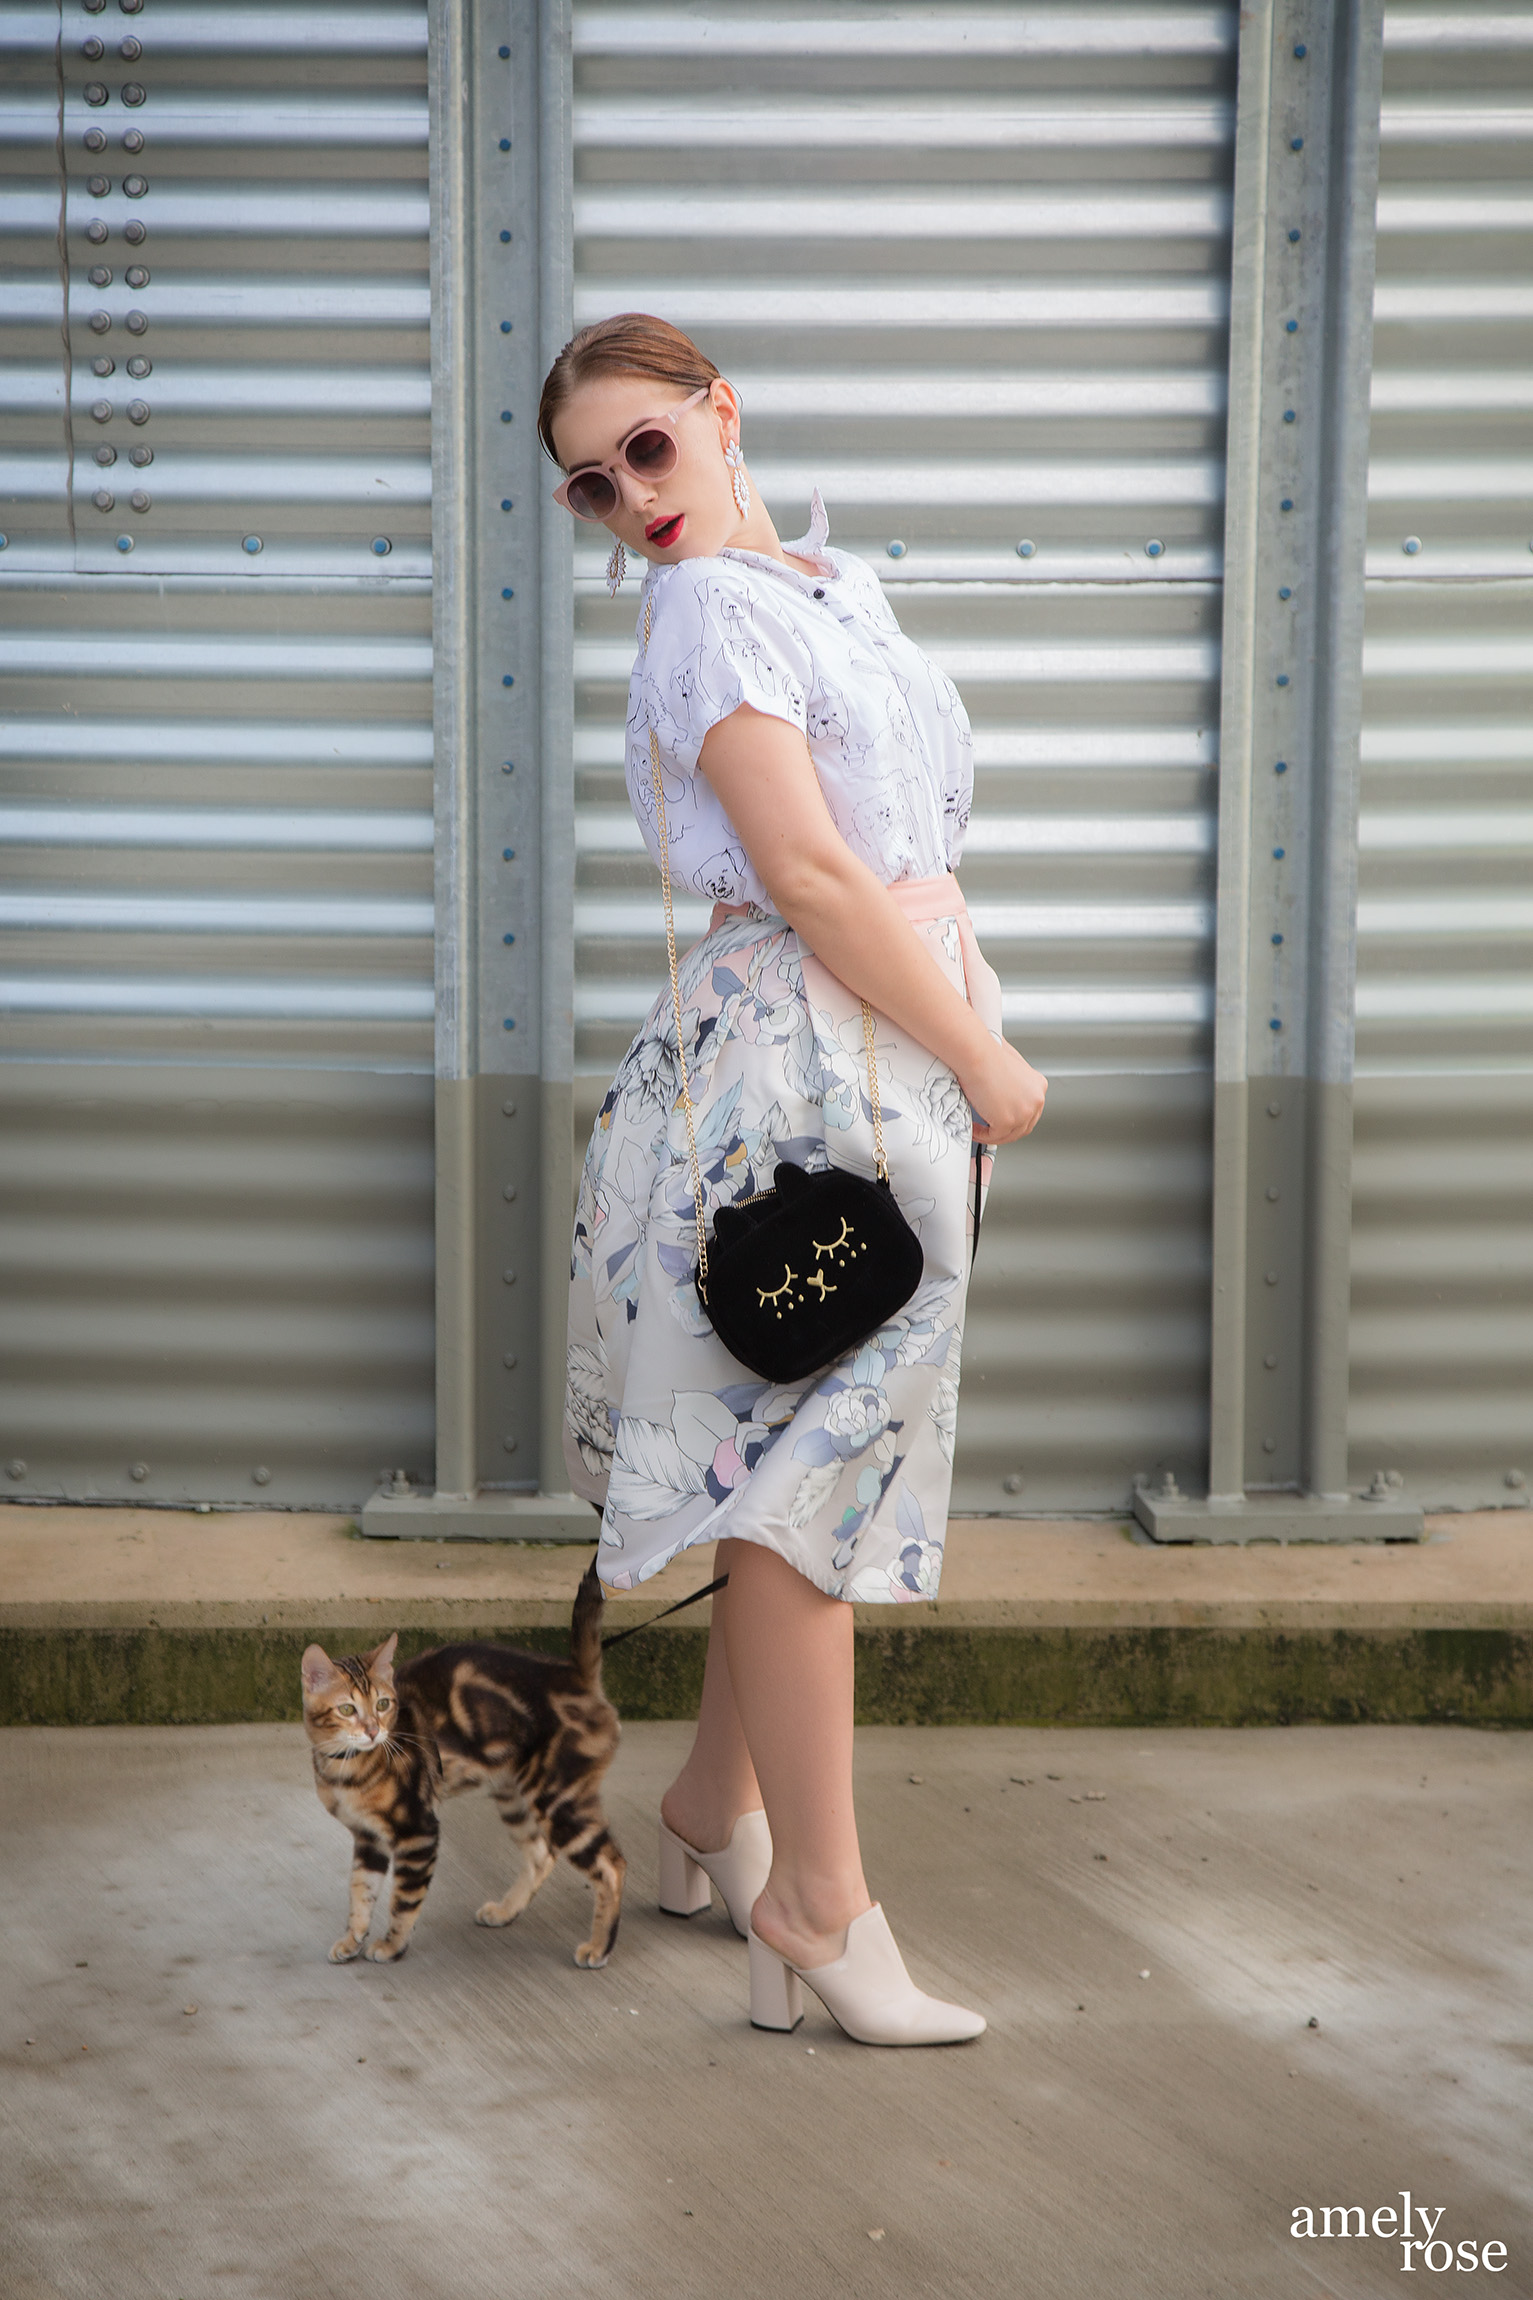 amelyrose_amely_rose_catwalk_bengal_catcontent_adventurecat_kitten_bengalcat_woman_cat